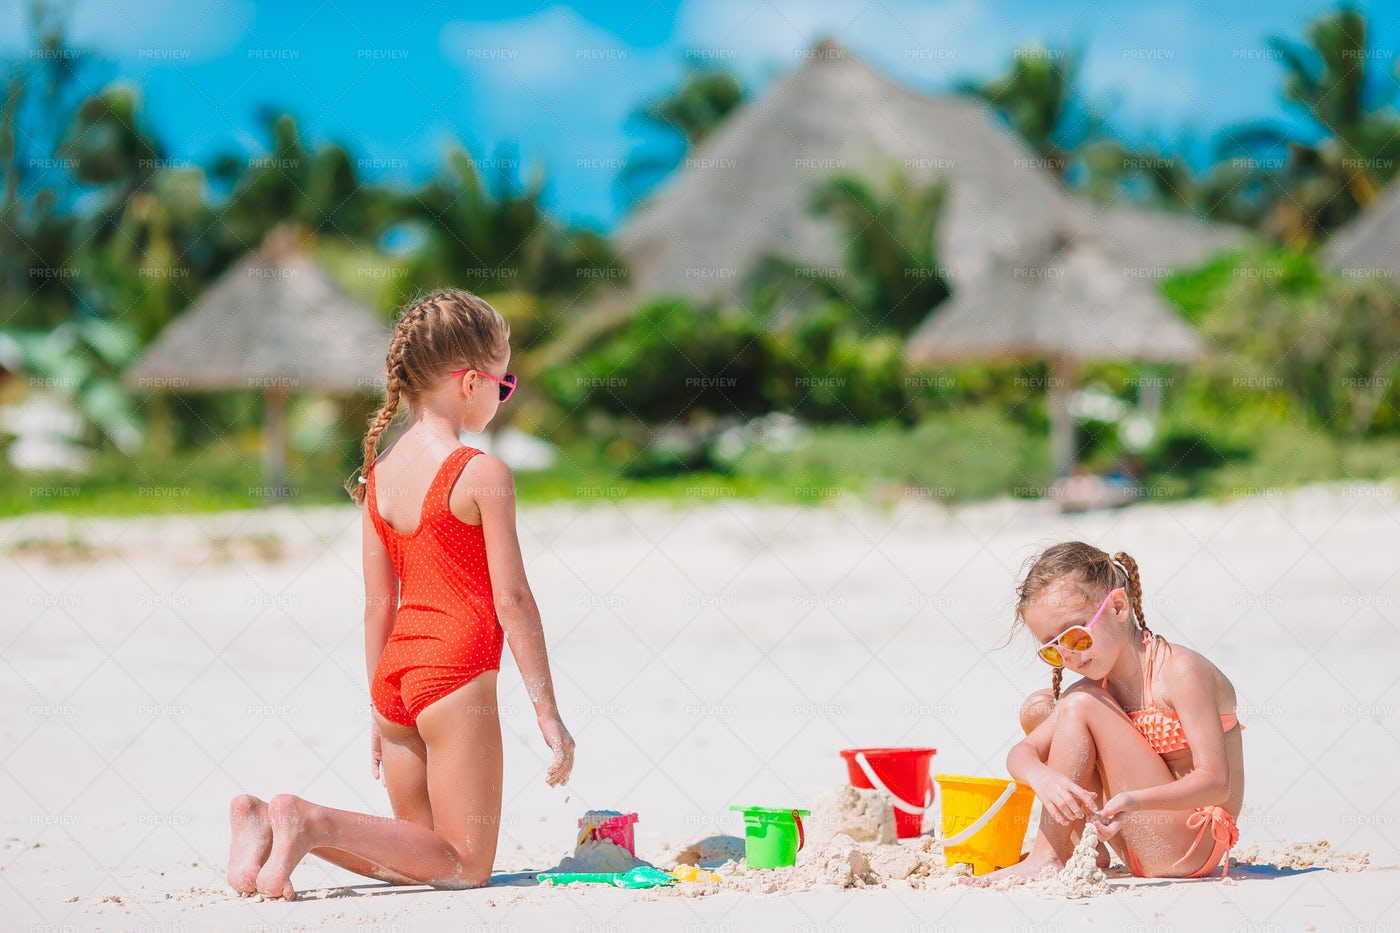 Two Kids Making A Sand Castle: Stock Photos